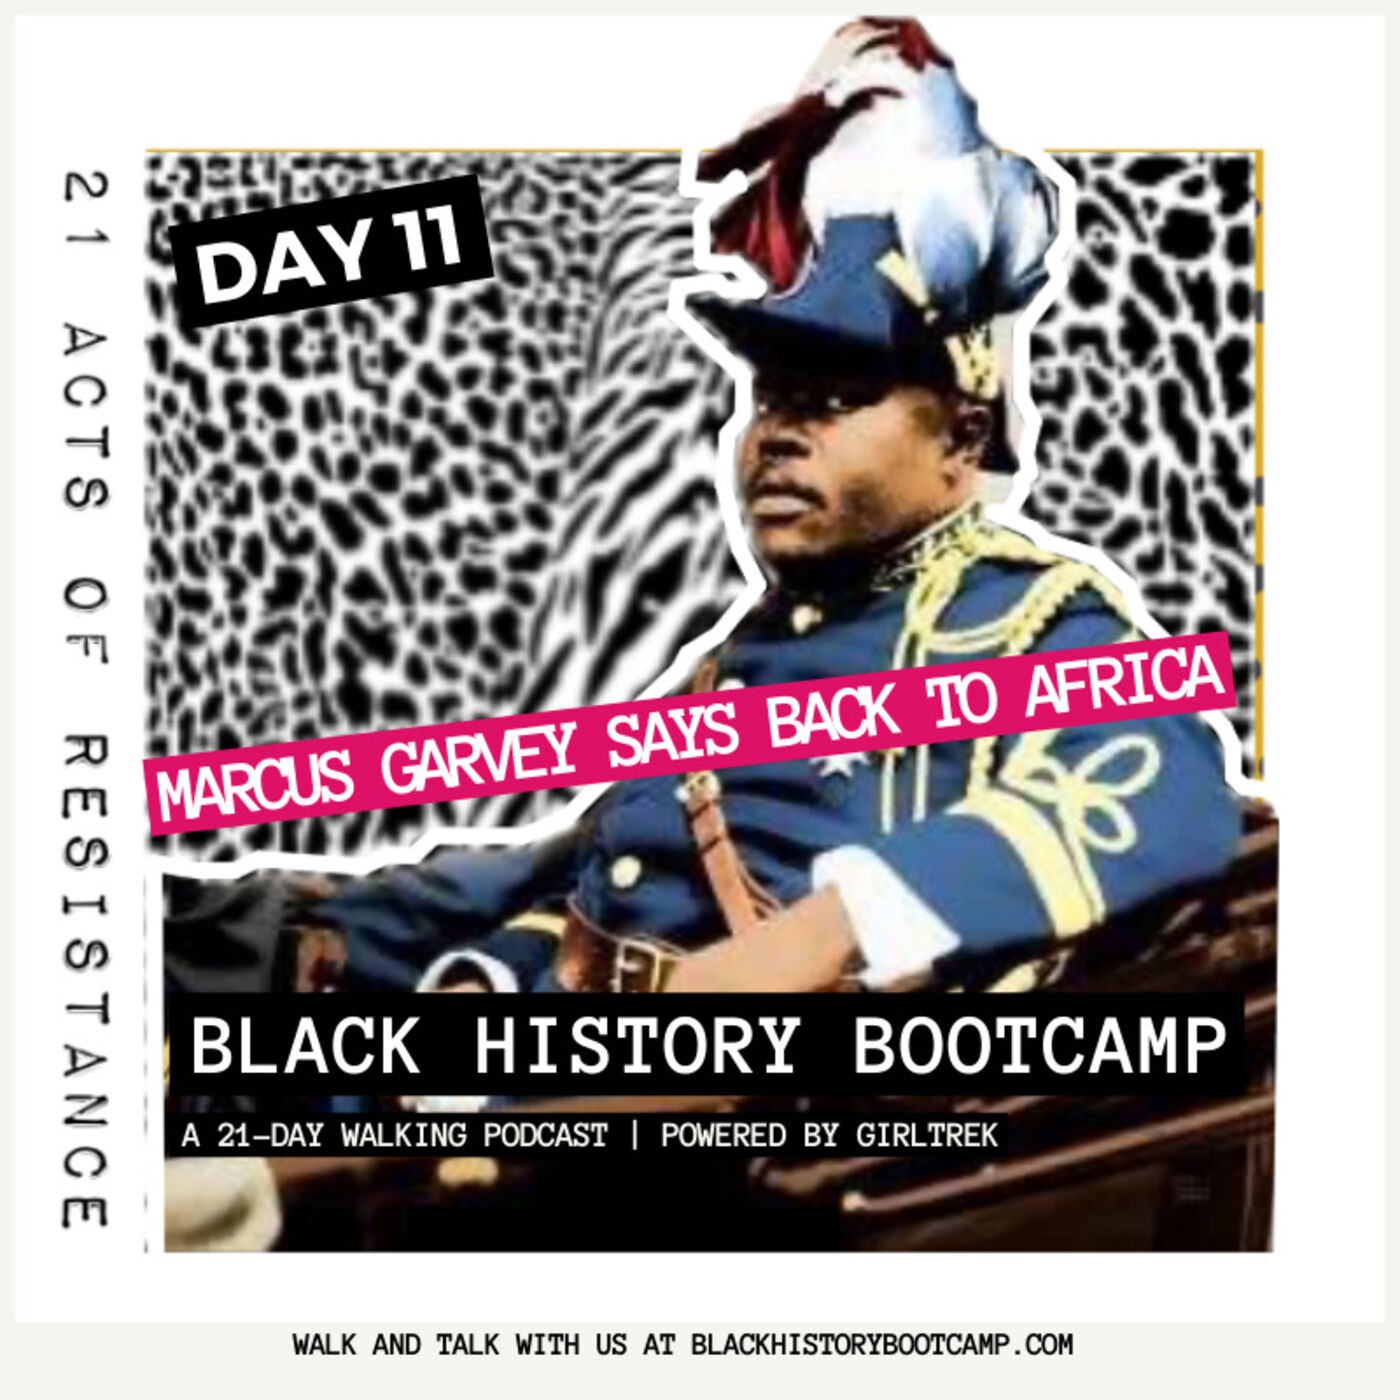 Day 11: Marcus Garvey Says Back To Africa